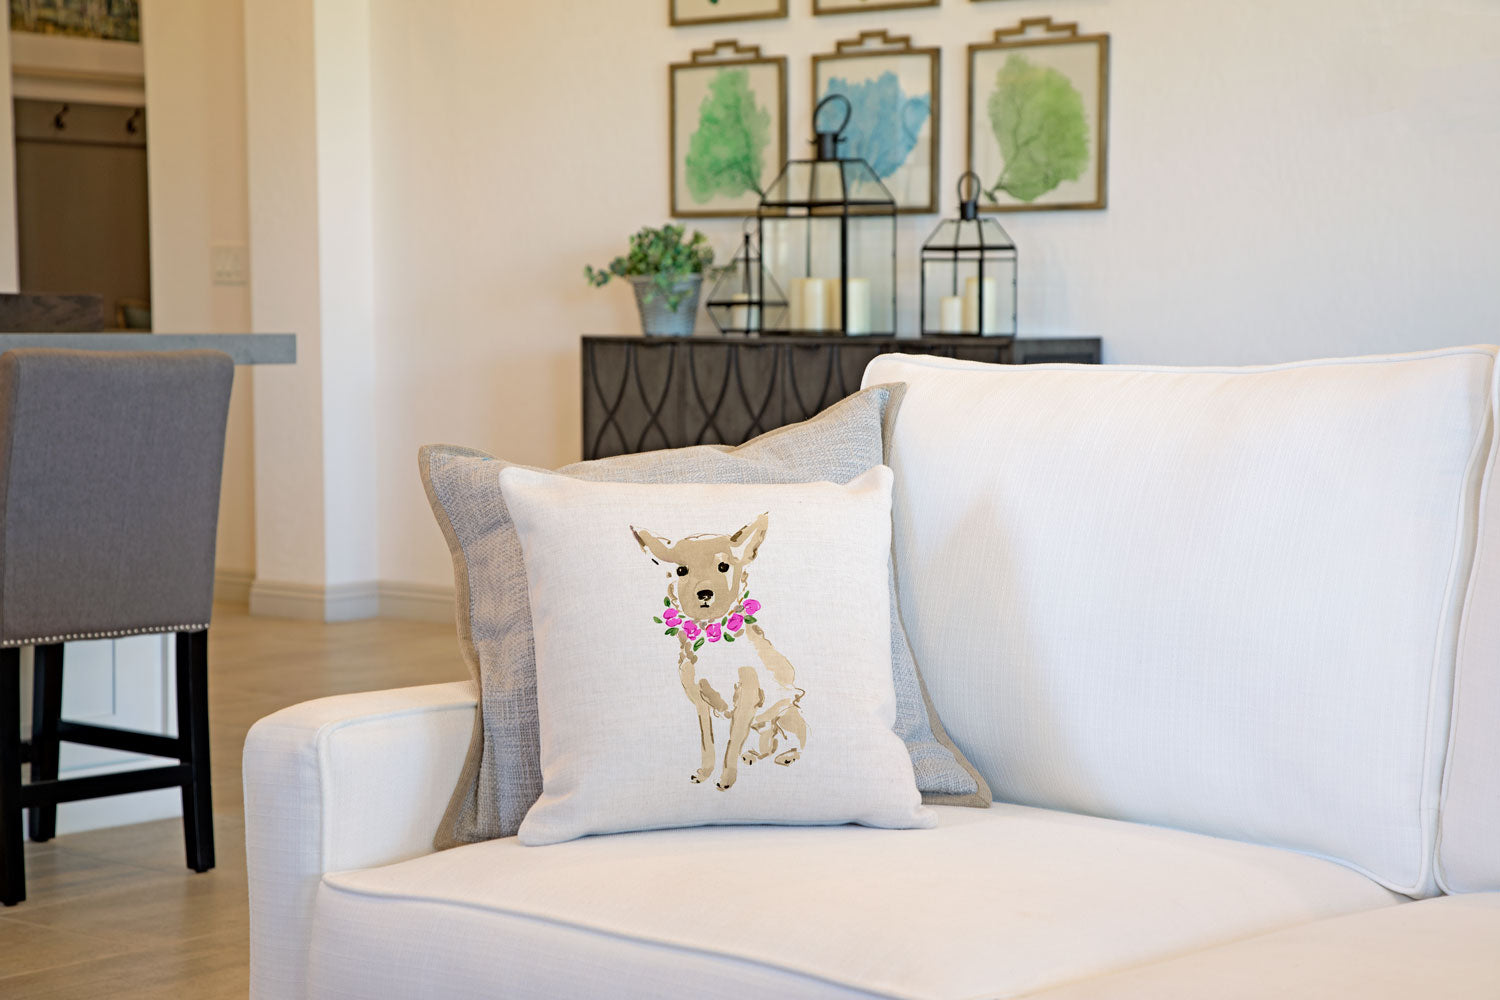 Coco Chihuahua Throw Pillow Cover - Dog Illustration Throw Pillow Cover Collection